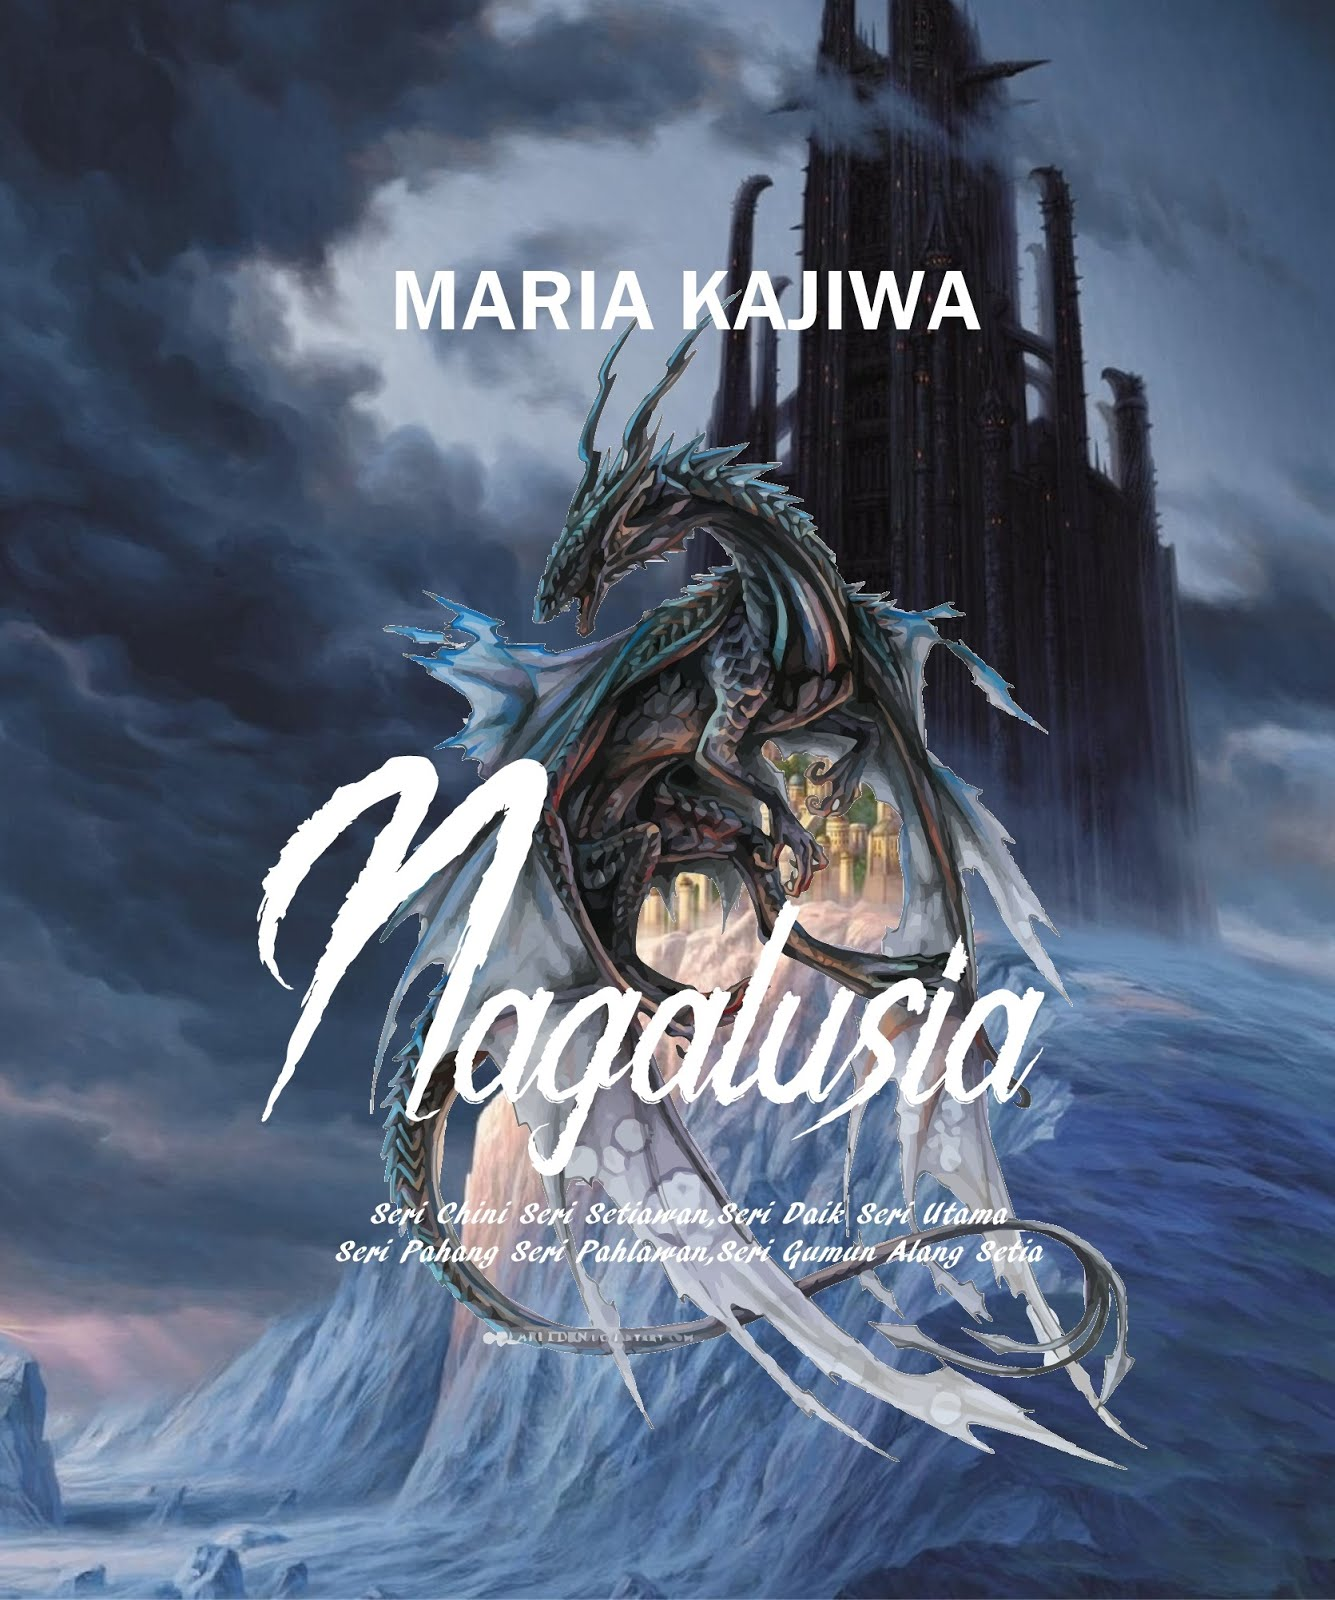 Novelet Adventure Thriller NAGALUSIA